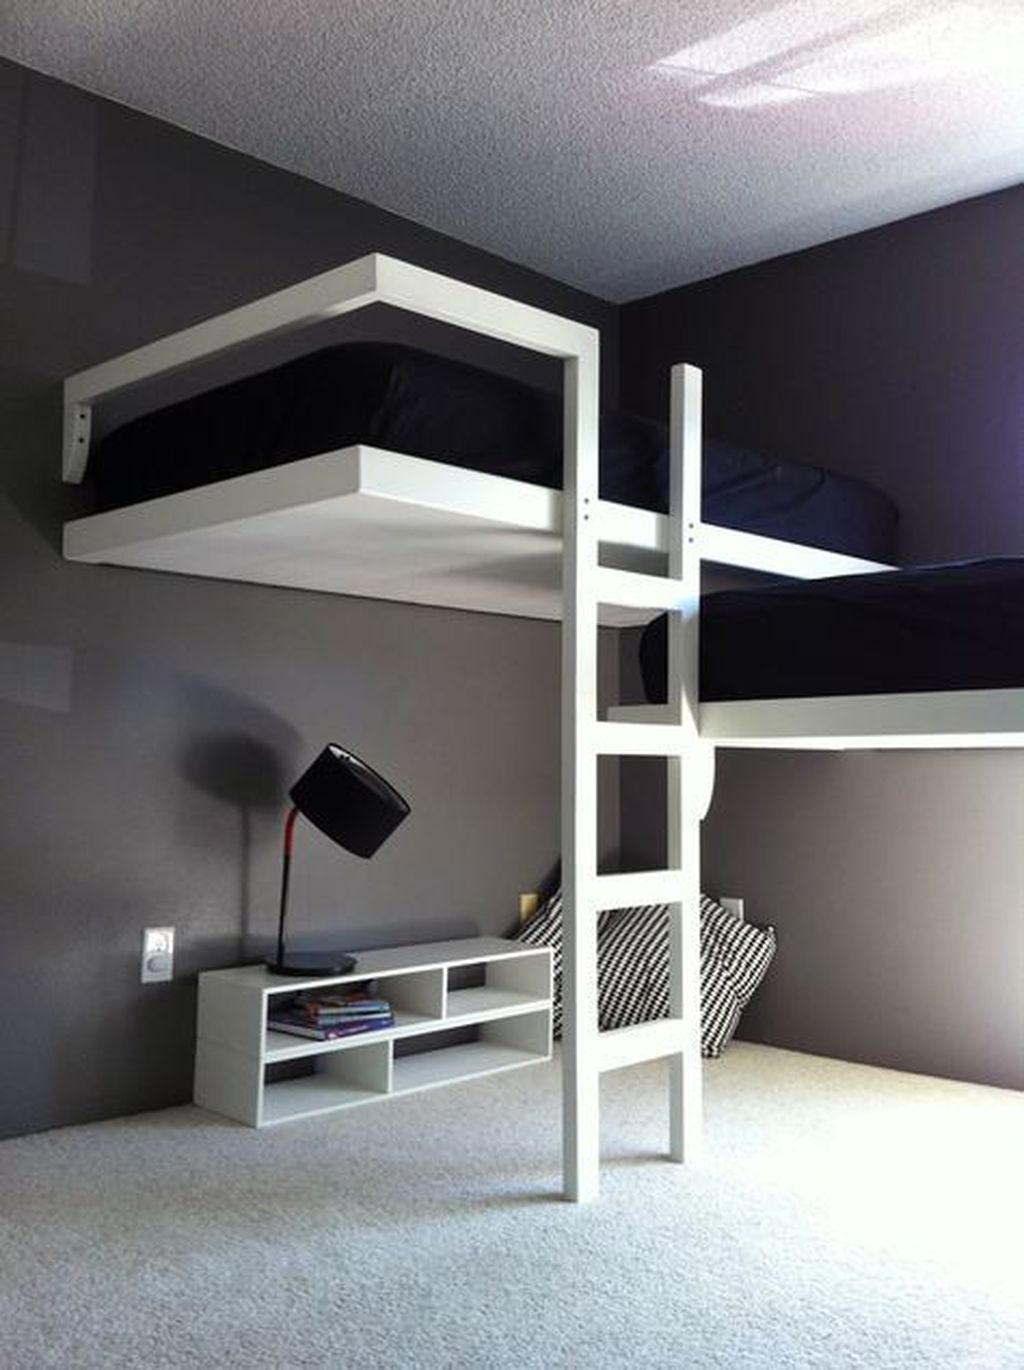 30 Fascinating Bunk Beds Design Ideas For Small Room Homyhomee In 2020 Modern Bunk Beds Cool Bunk Beds Custom Bunk Beds